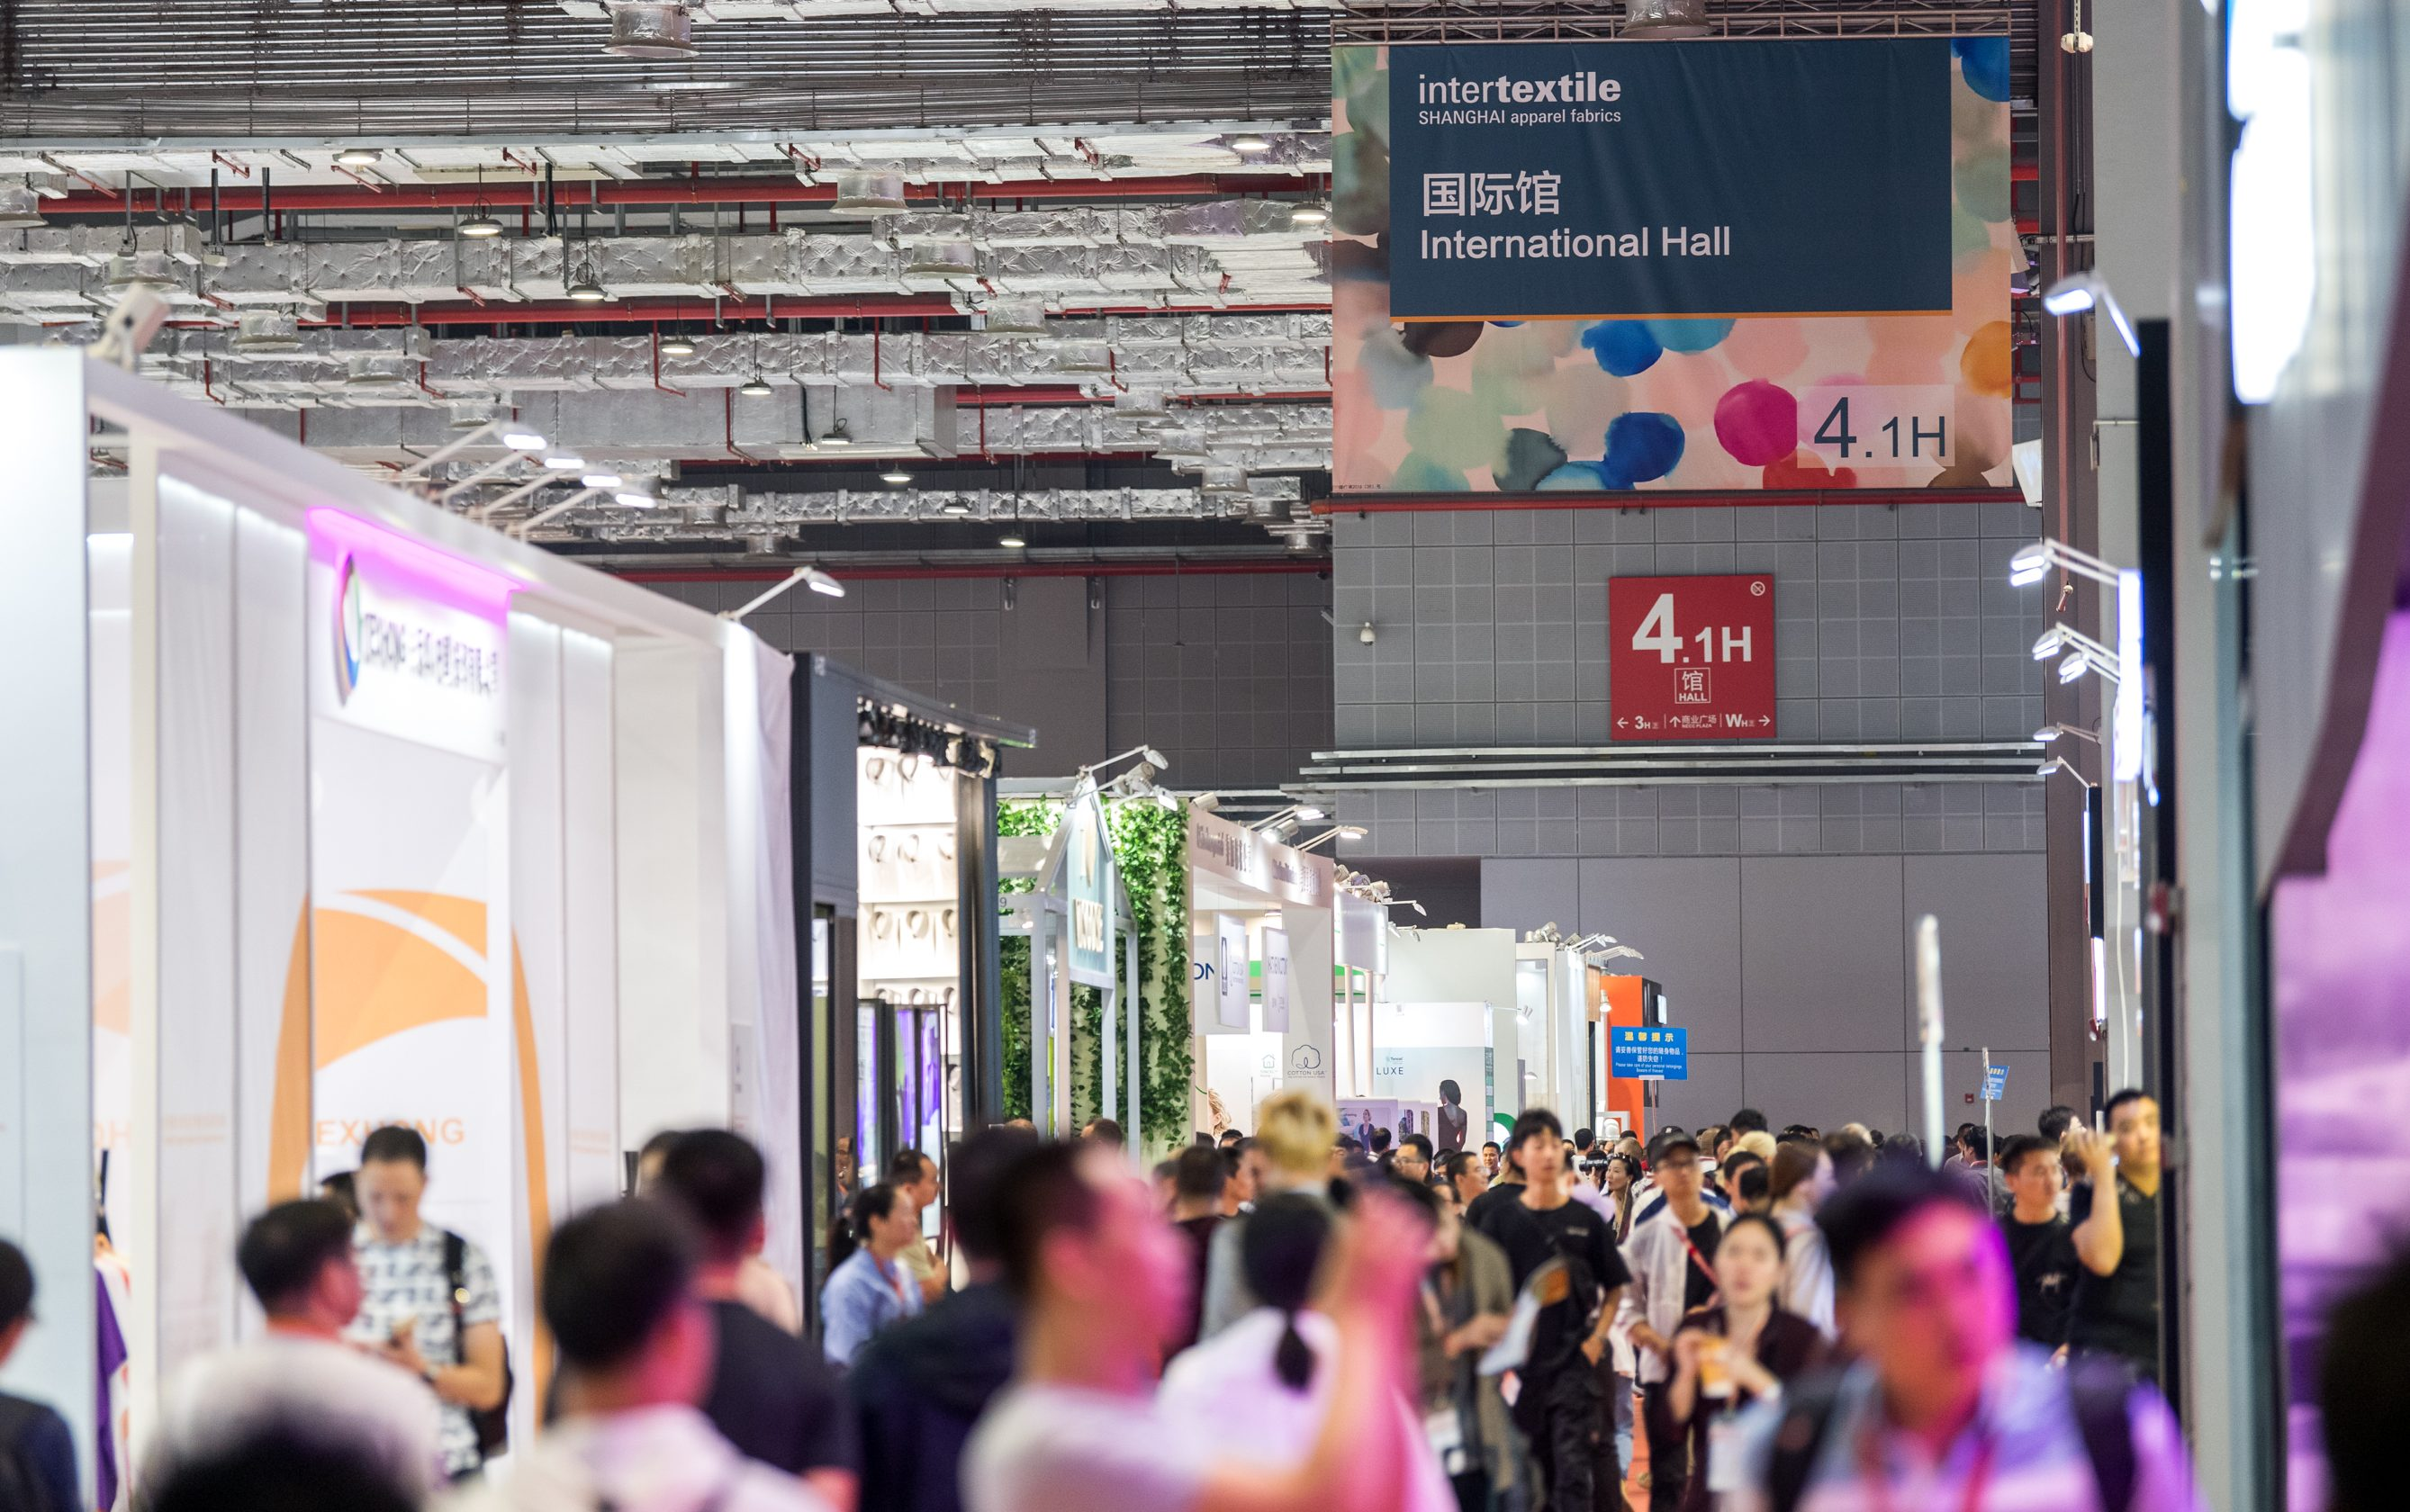 Exhibitors at Intertextile Shanghai expressed worries over the impact of the brewing U.S.-China trade war.